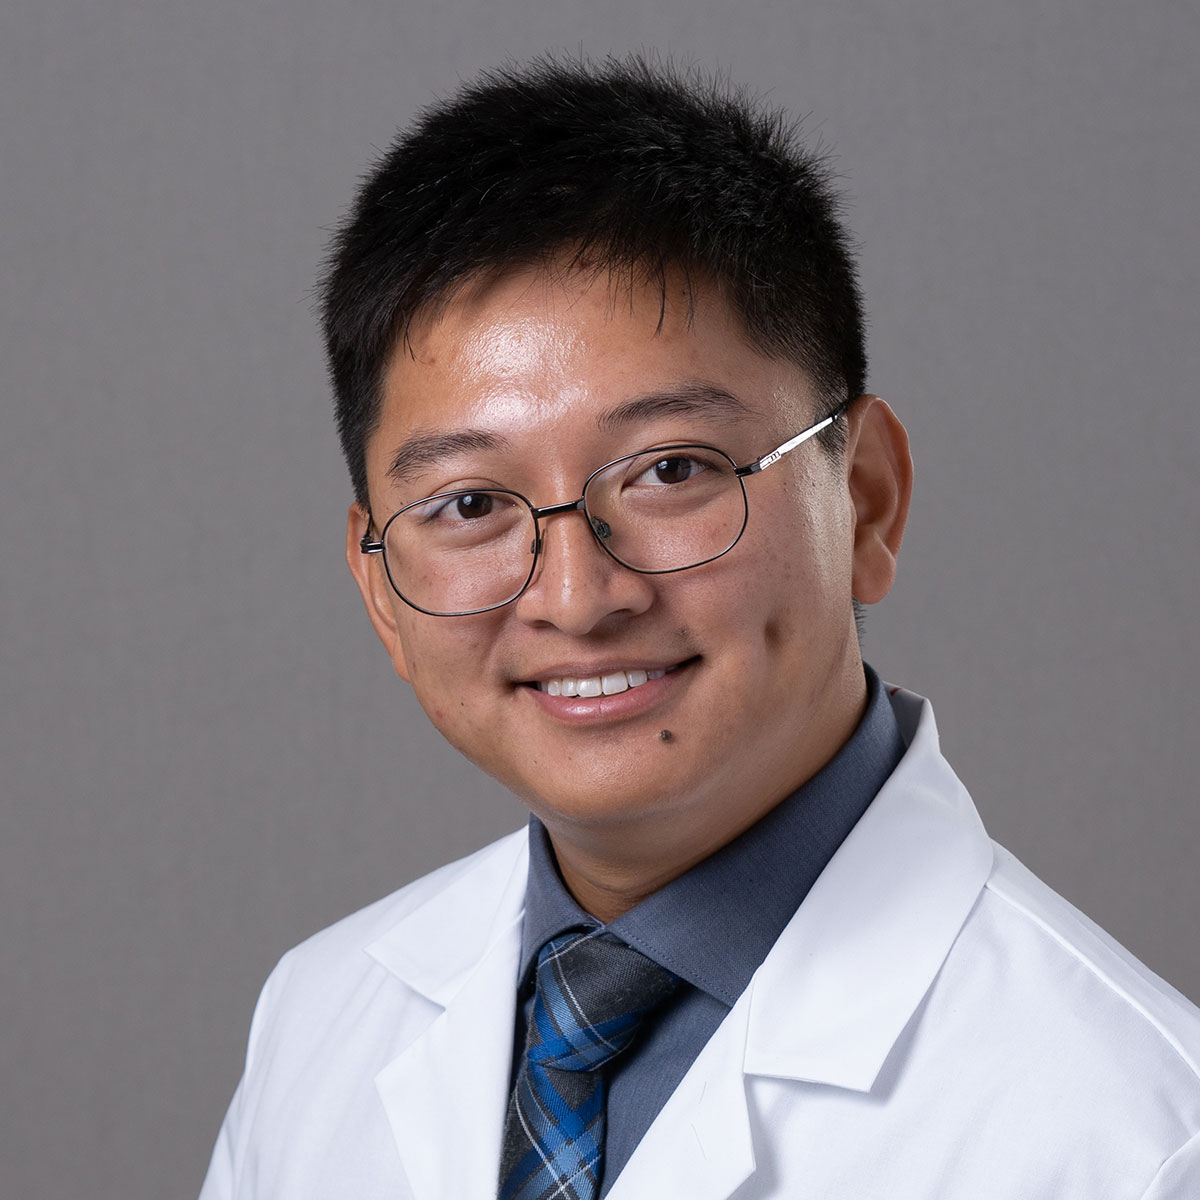 A friendly headshot of Dr. Anh Le